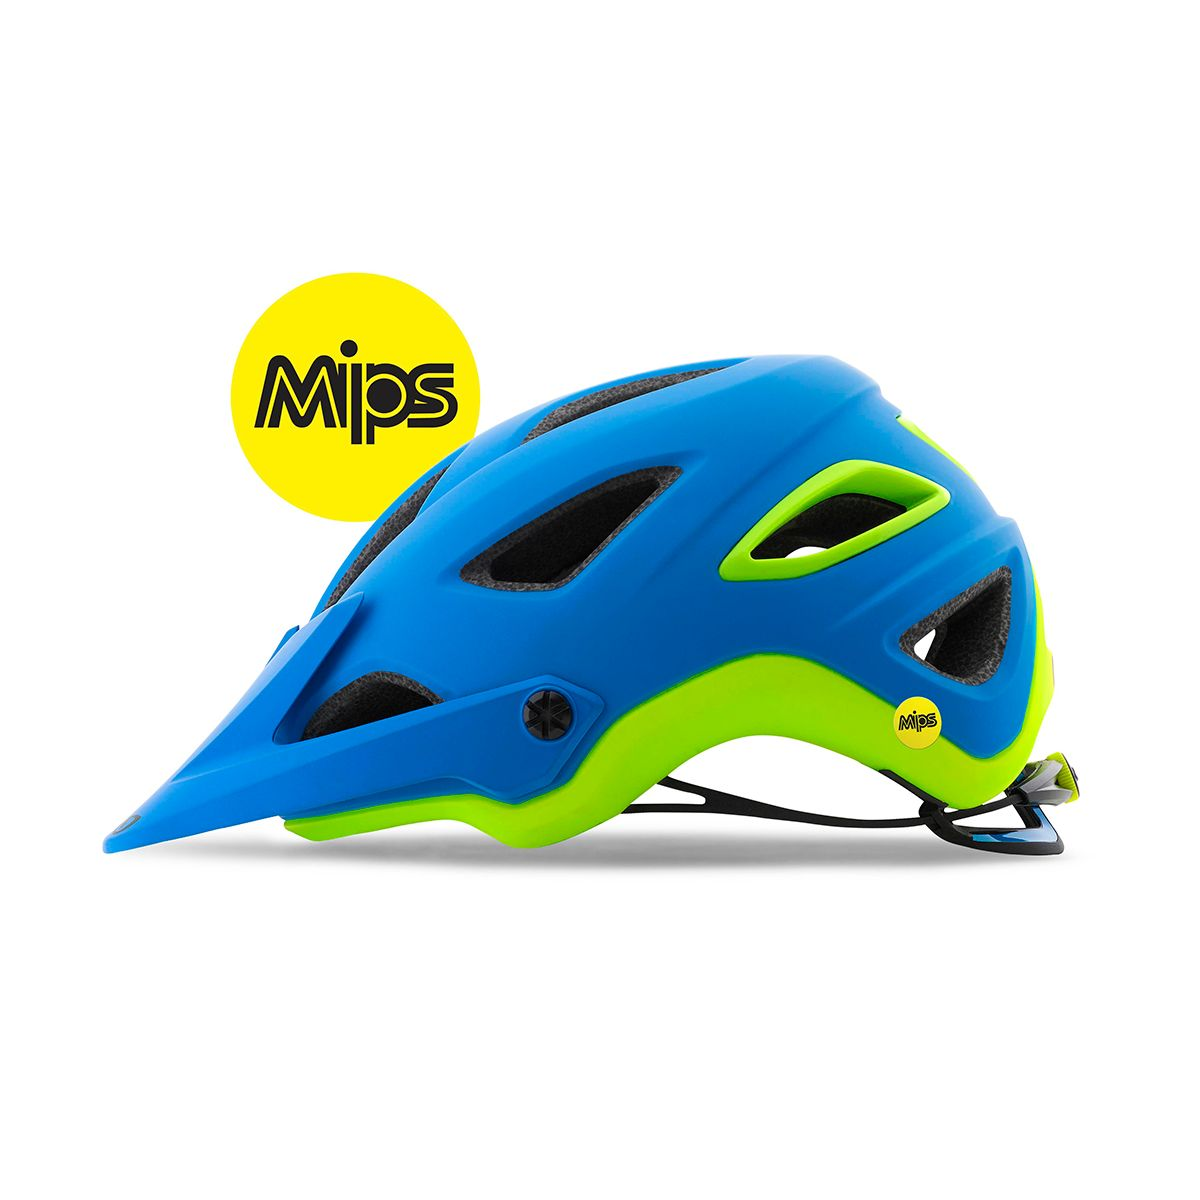 MONTARO helmet with MIPS